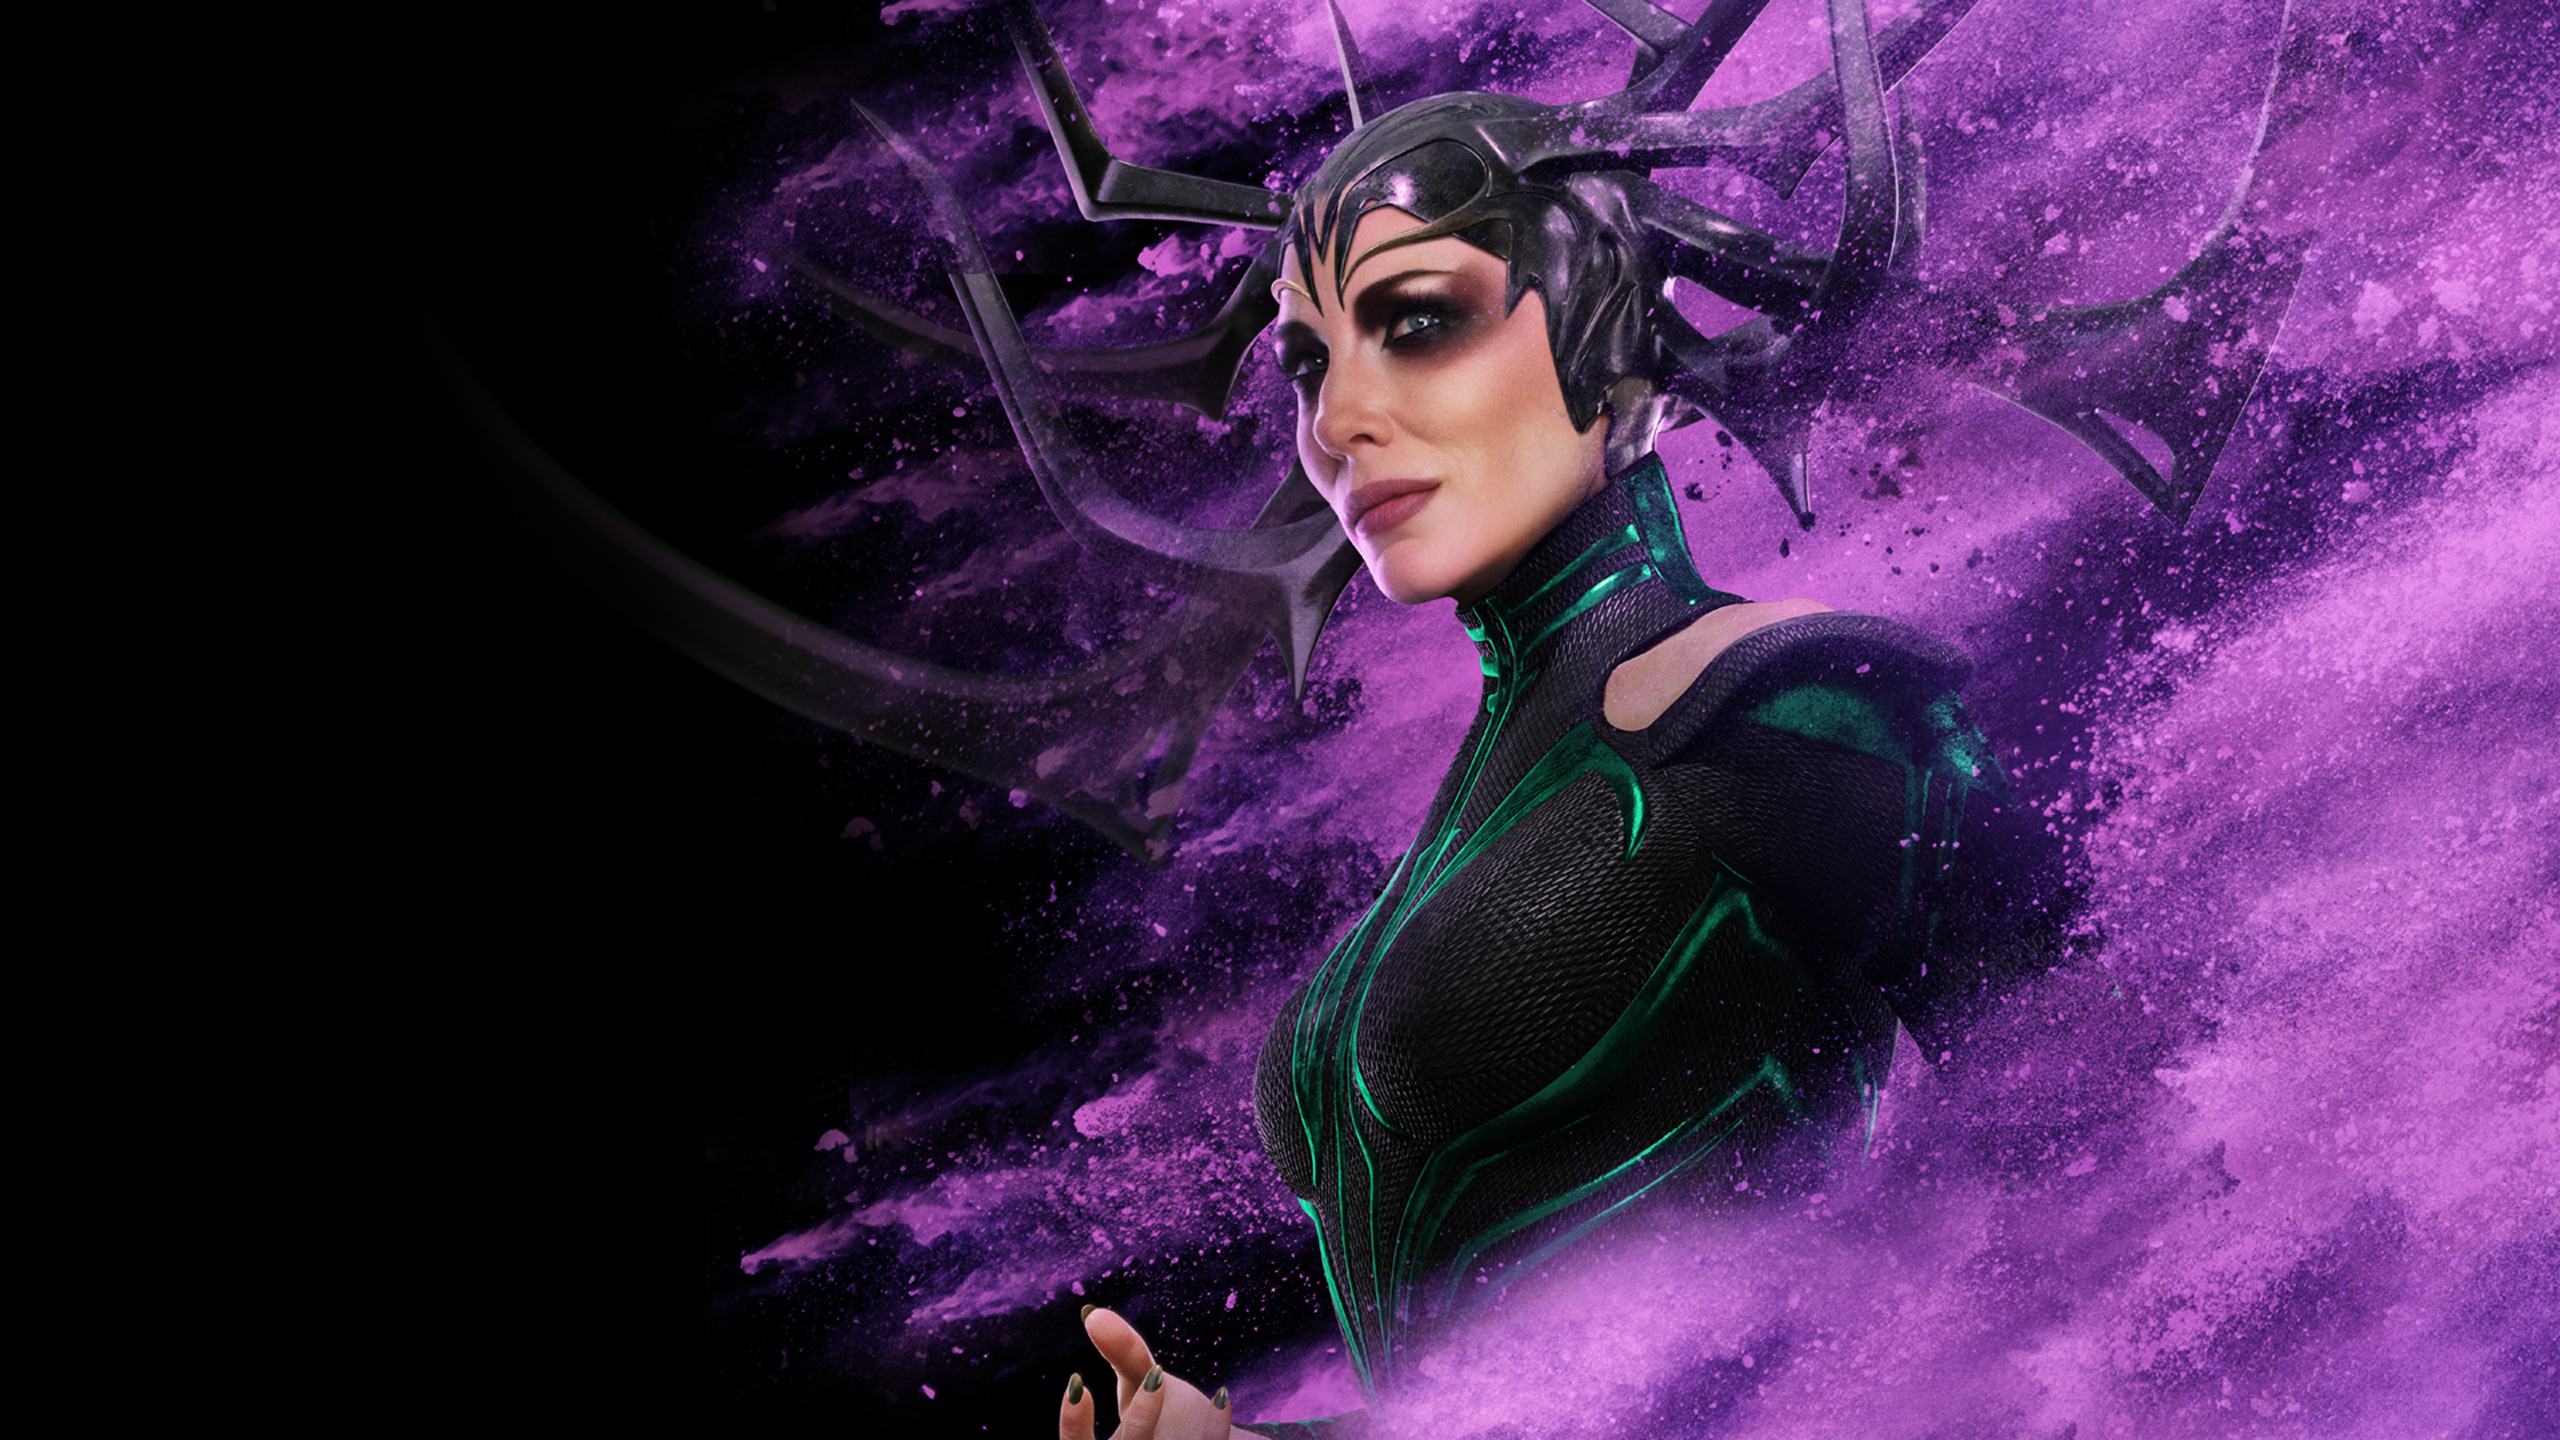 thor ragnarok hela, hd movies, 4k wallpapers, images, backgrounds